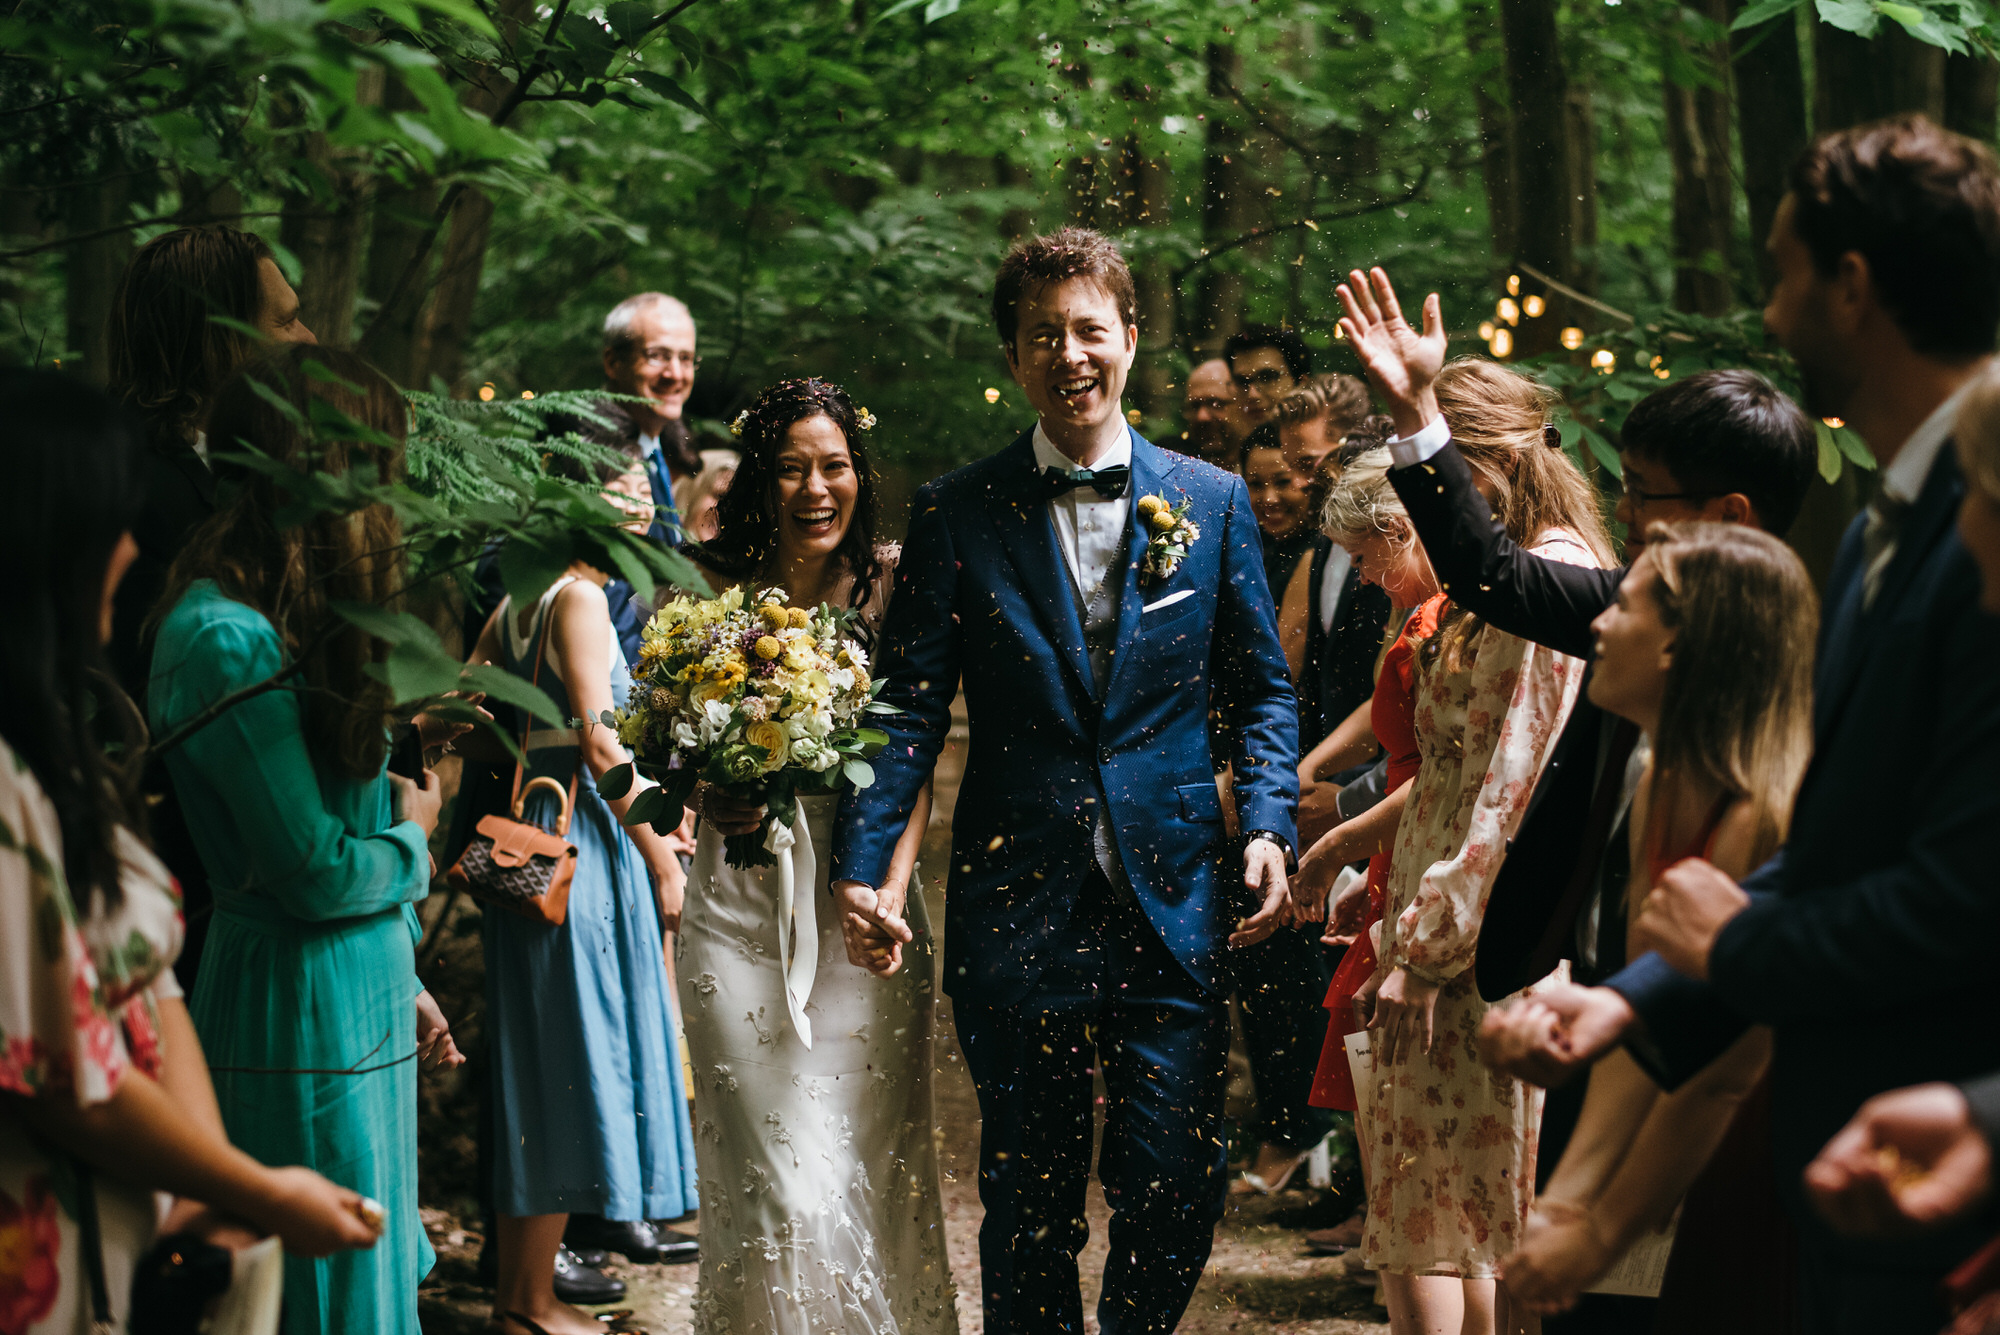 The dreys woodland wedding ceremony